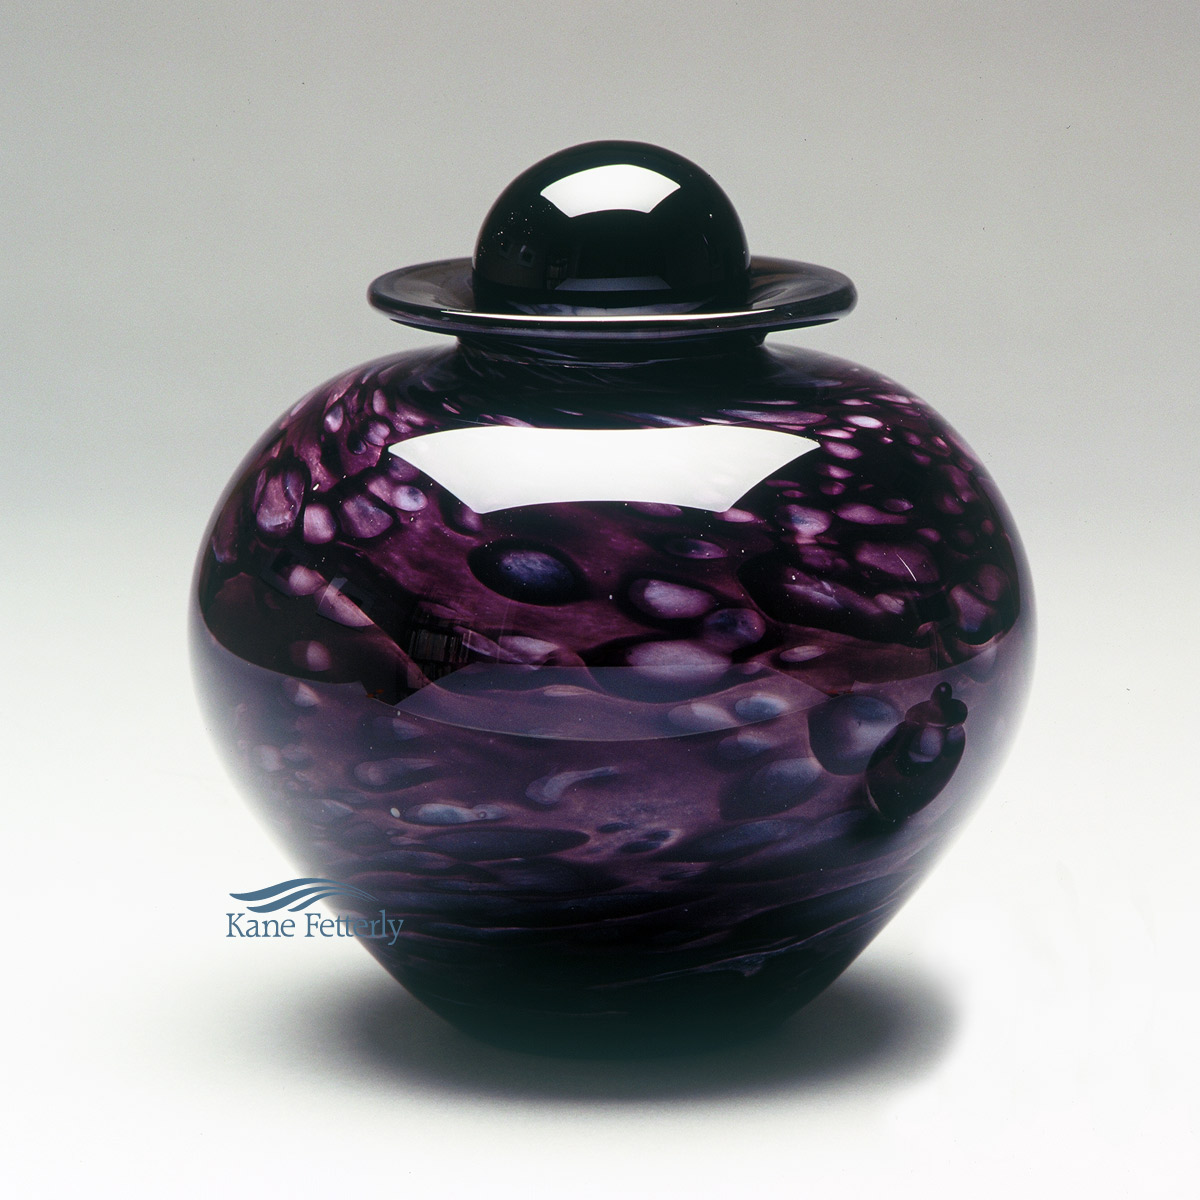 U8210PR Hand-blown glass urn